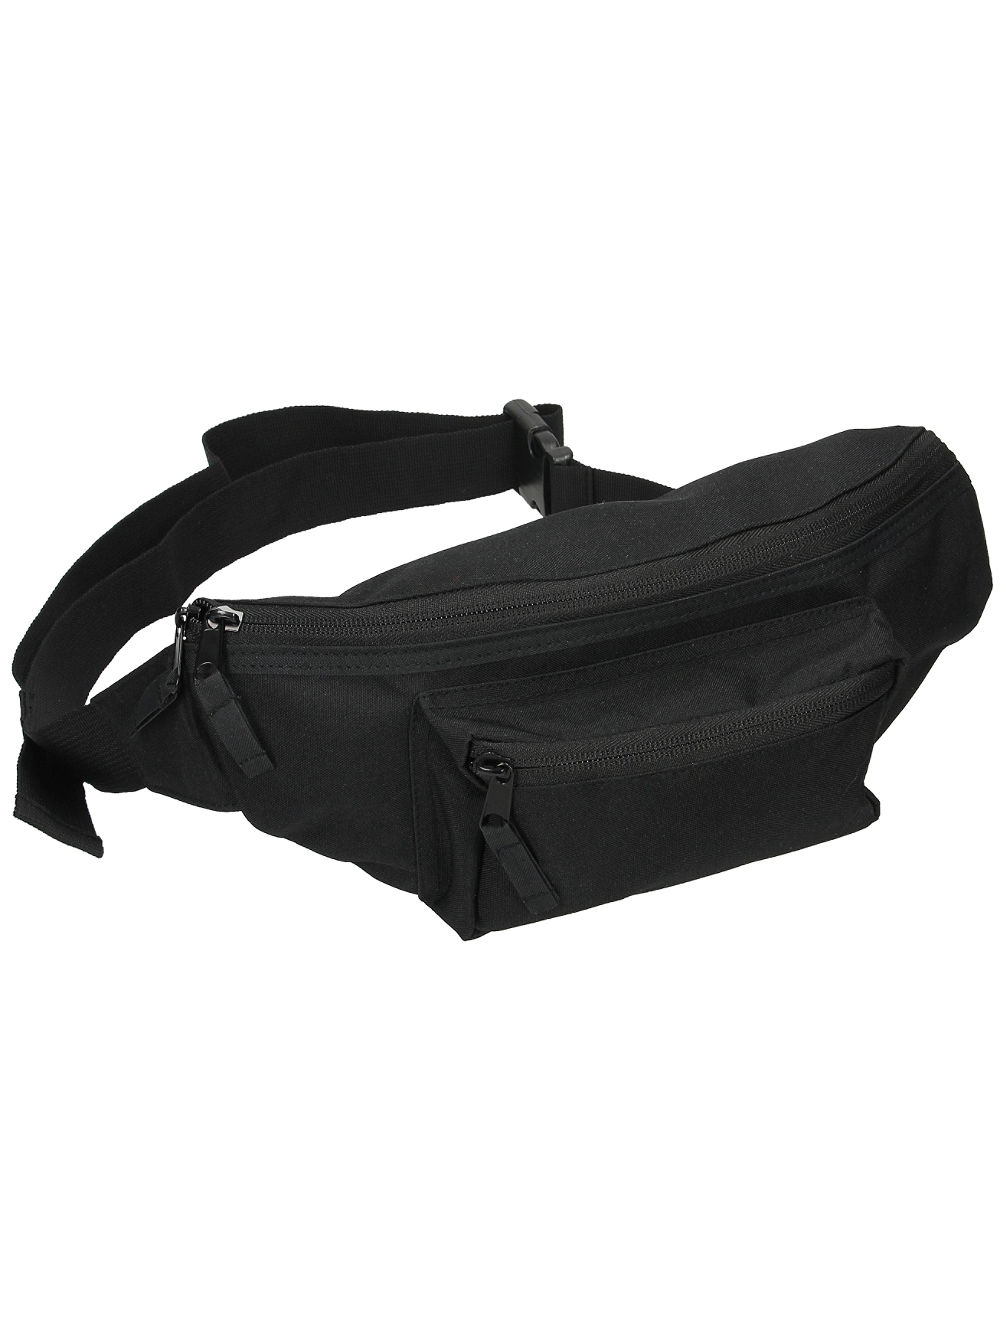 Mannypack Hip Bag